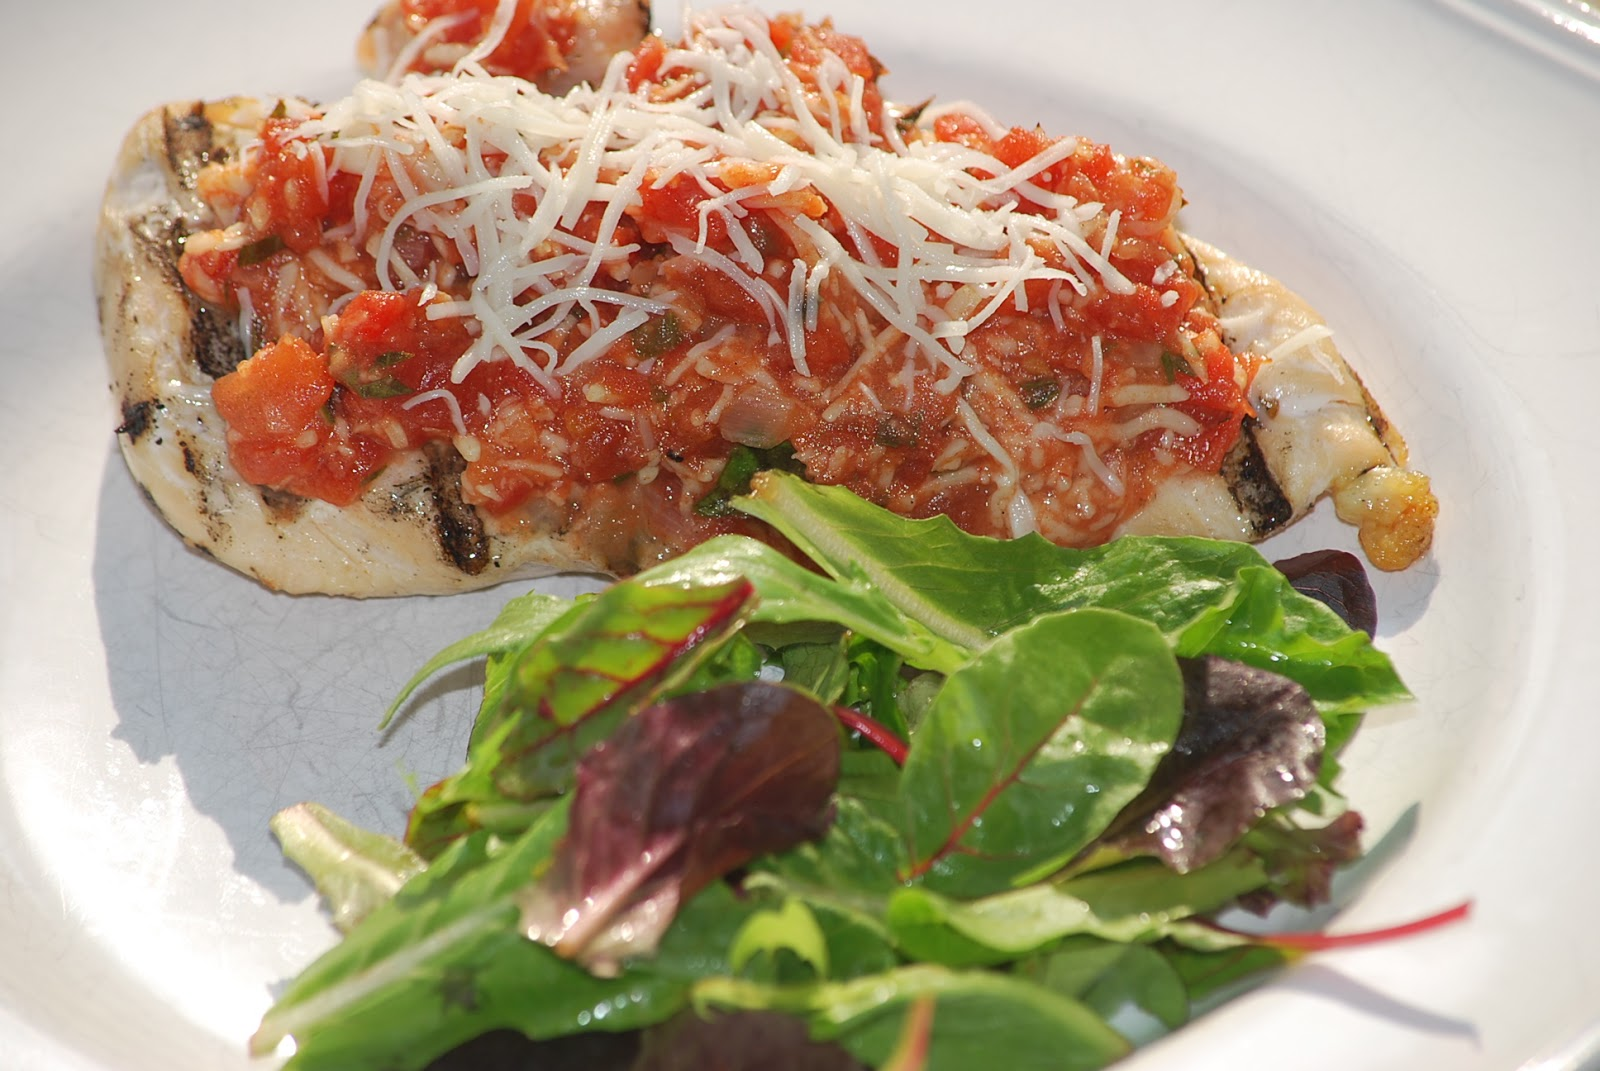 My story in recipes: Grilled Chicken Parmesan